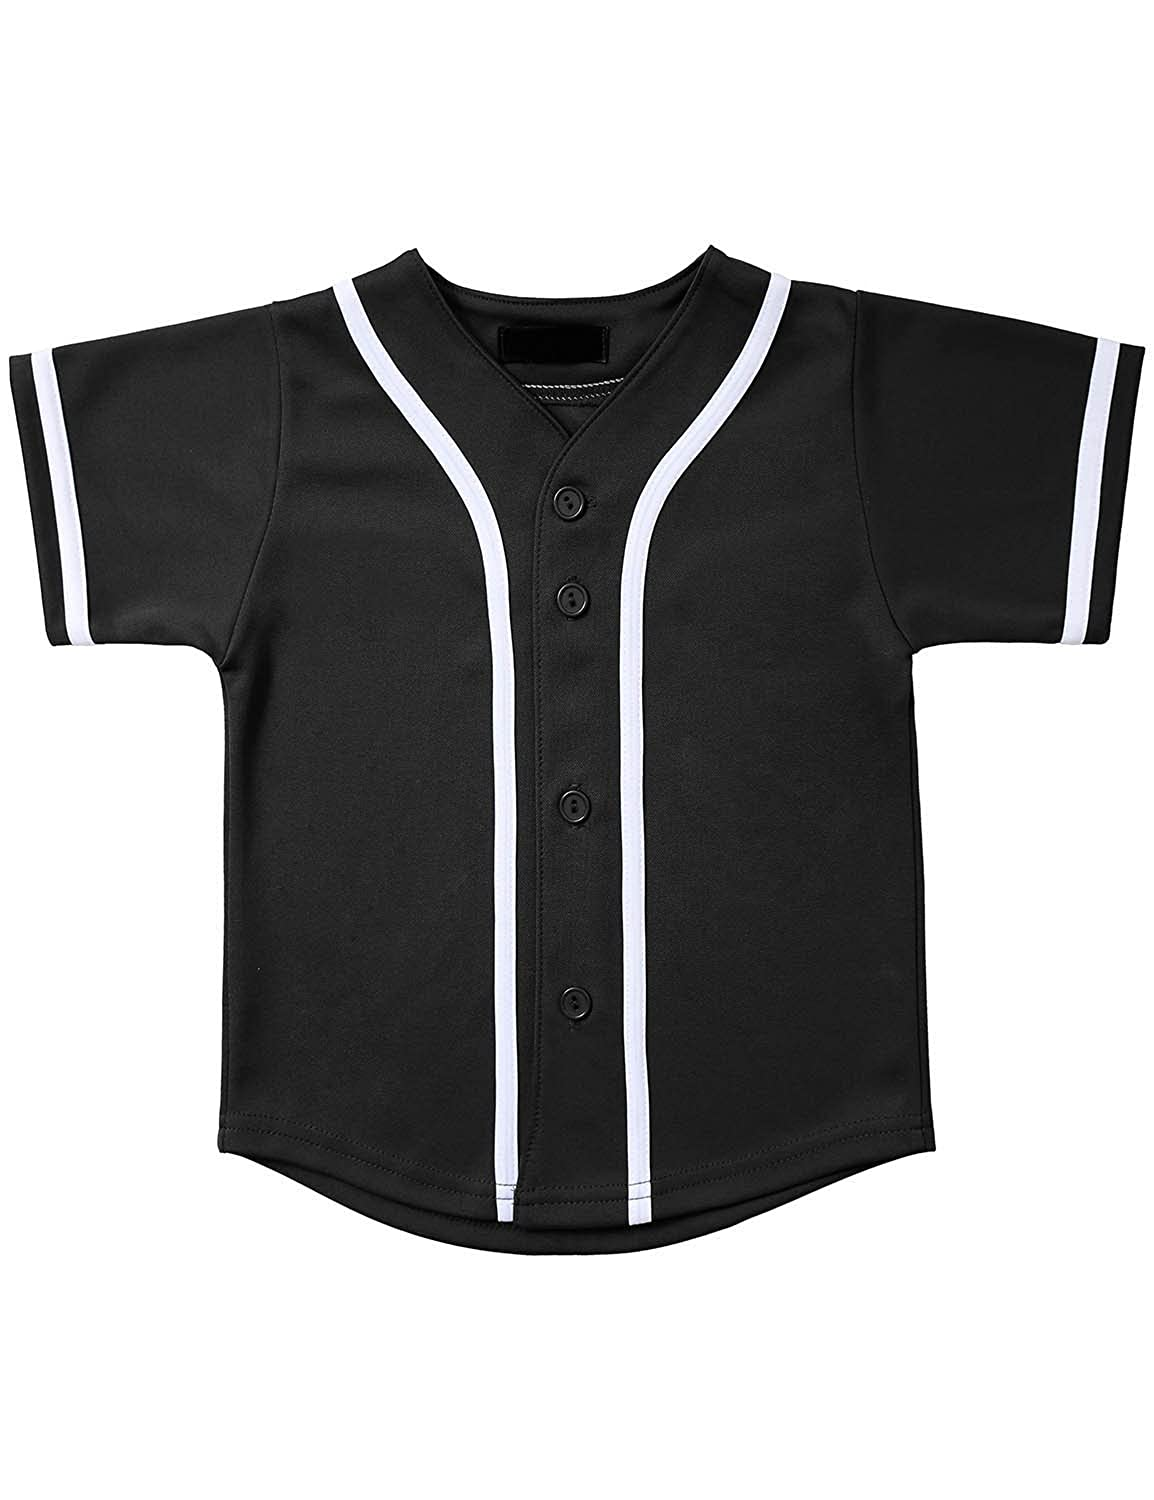 04af4cdd Premium 100% Polyester Made in USA Kids Baseball Button Down Baseball T- shirts Casual Uniform Jersey; Only Hatandbeyond is authorized to sell this  Authentic ...